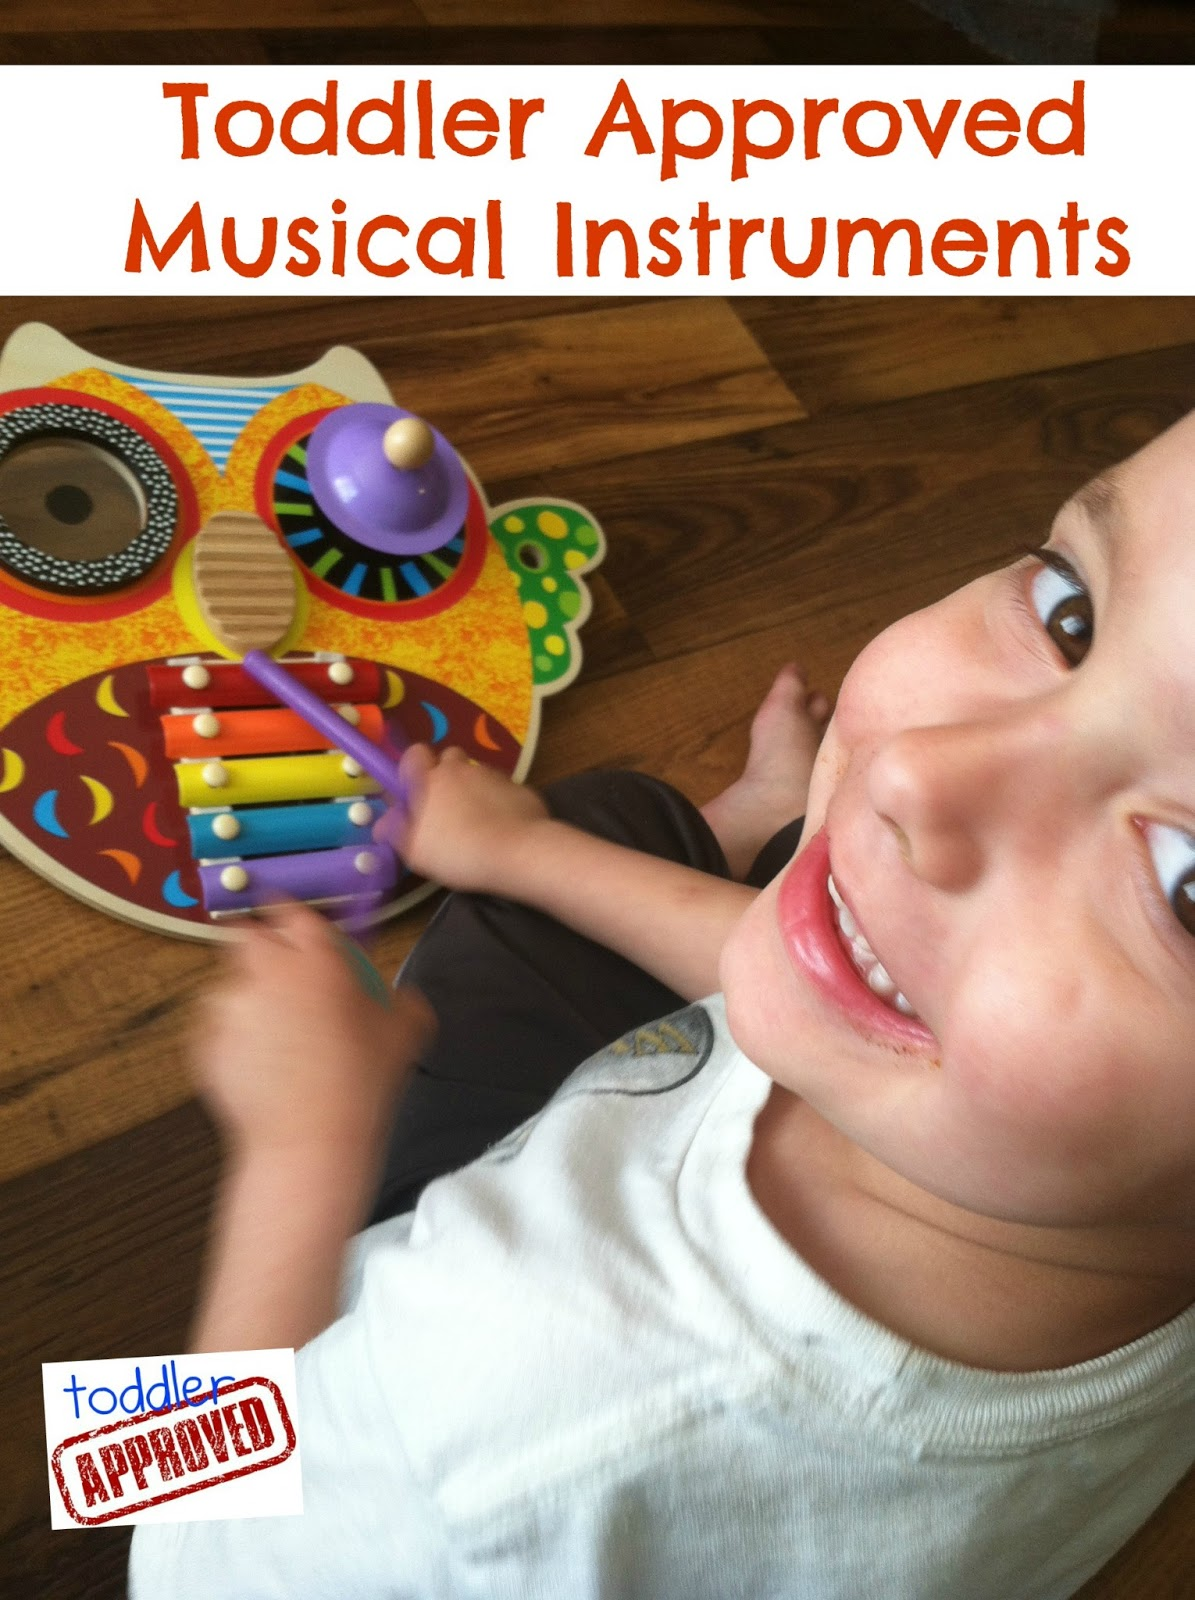 Toddler Approved!: Toddler Approved Musical Instruments: ALEX ...